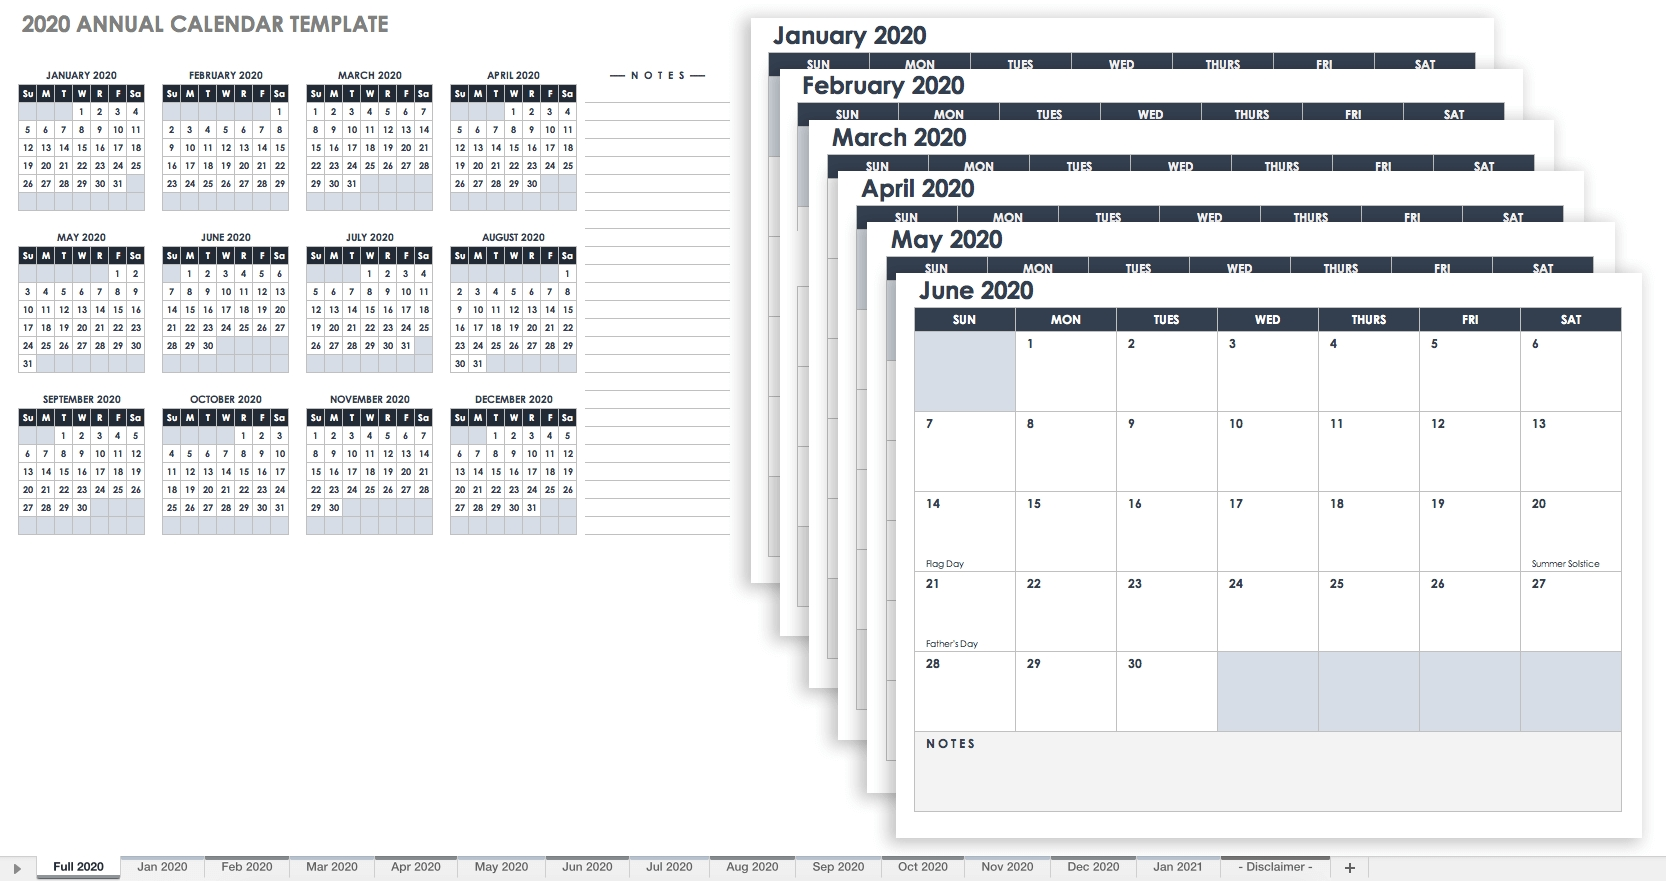 Free Blank Calendar Templates - Smartsheet pertaining to Year At A Glance Calendar - Vacation Schedule For Staff